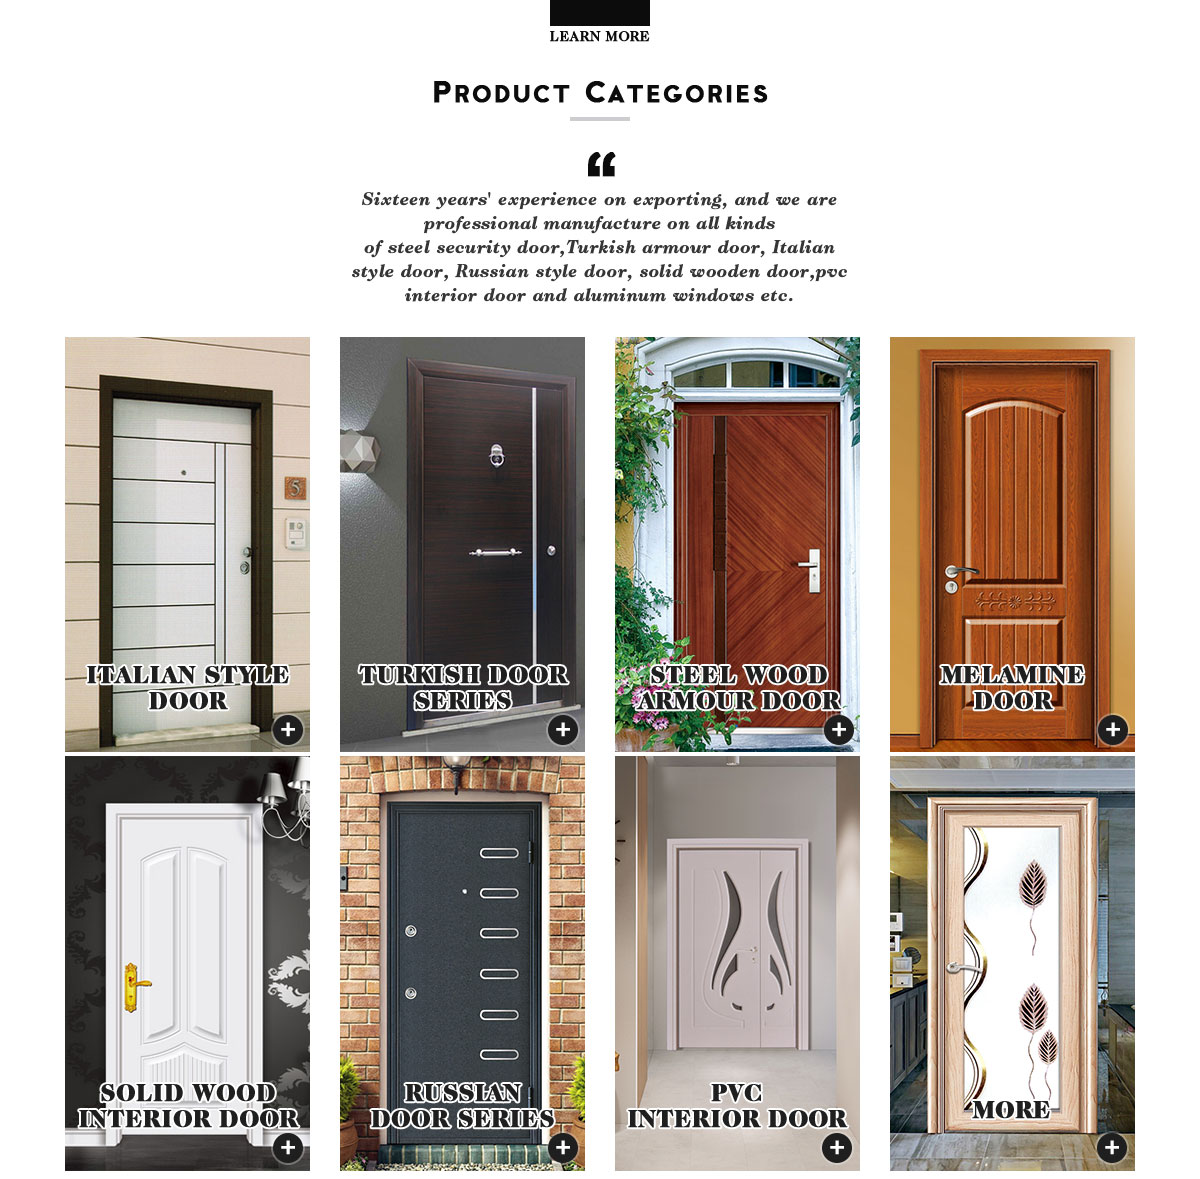 door entrance doors armed overview fire steel uygun interior proof security bullet product